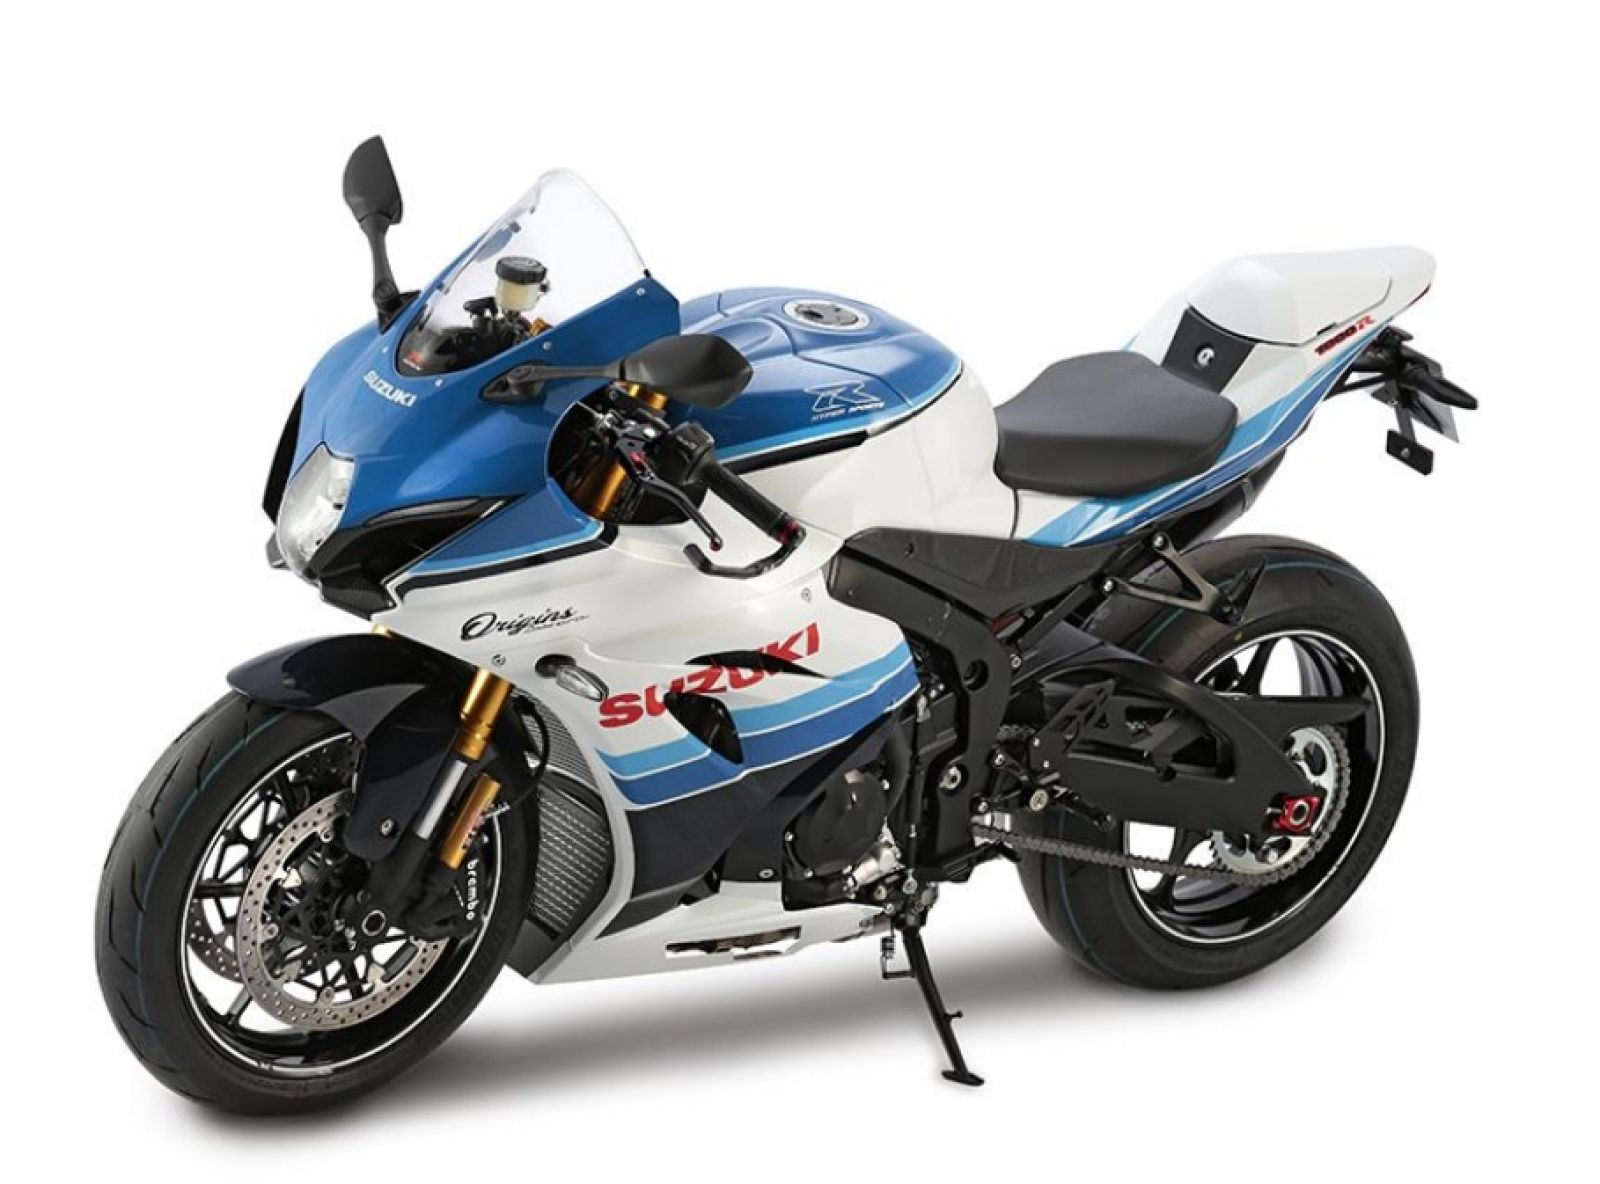 actualité - GSX-R1000R Origins - image d'illustration 11